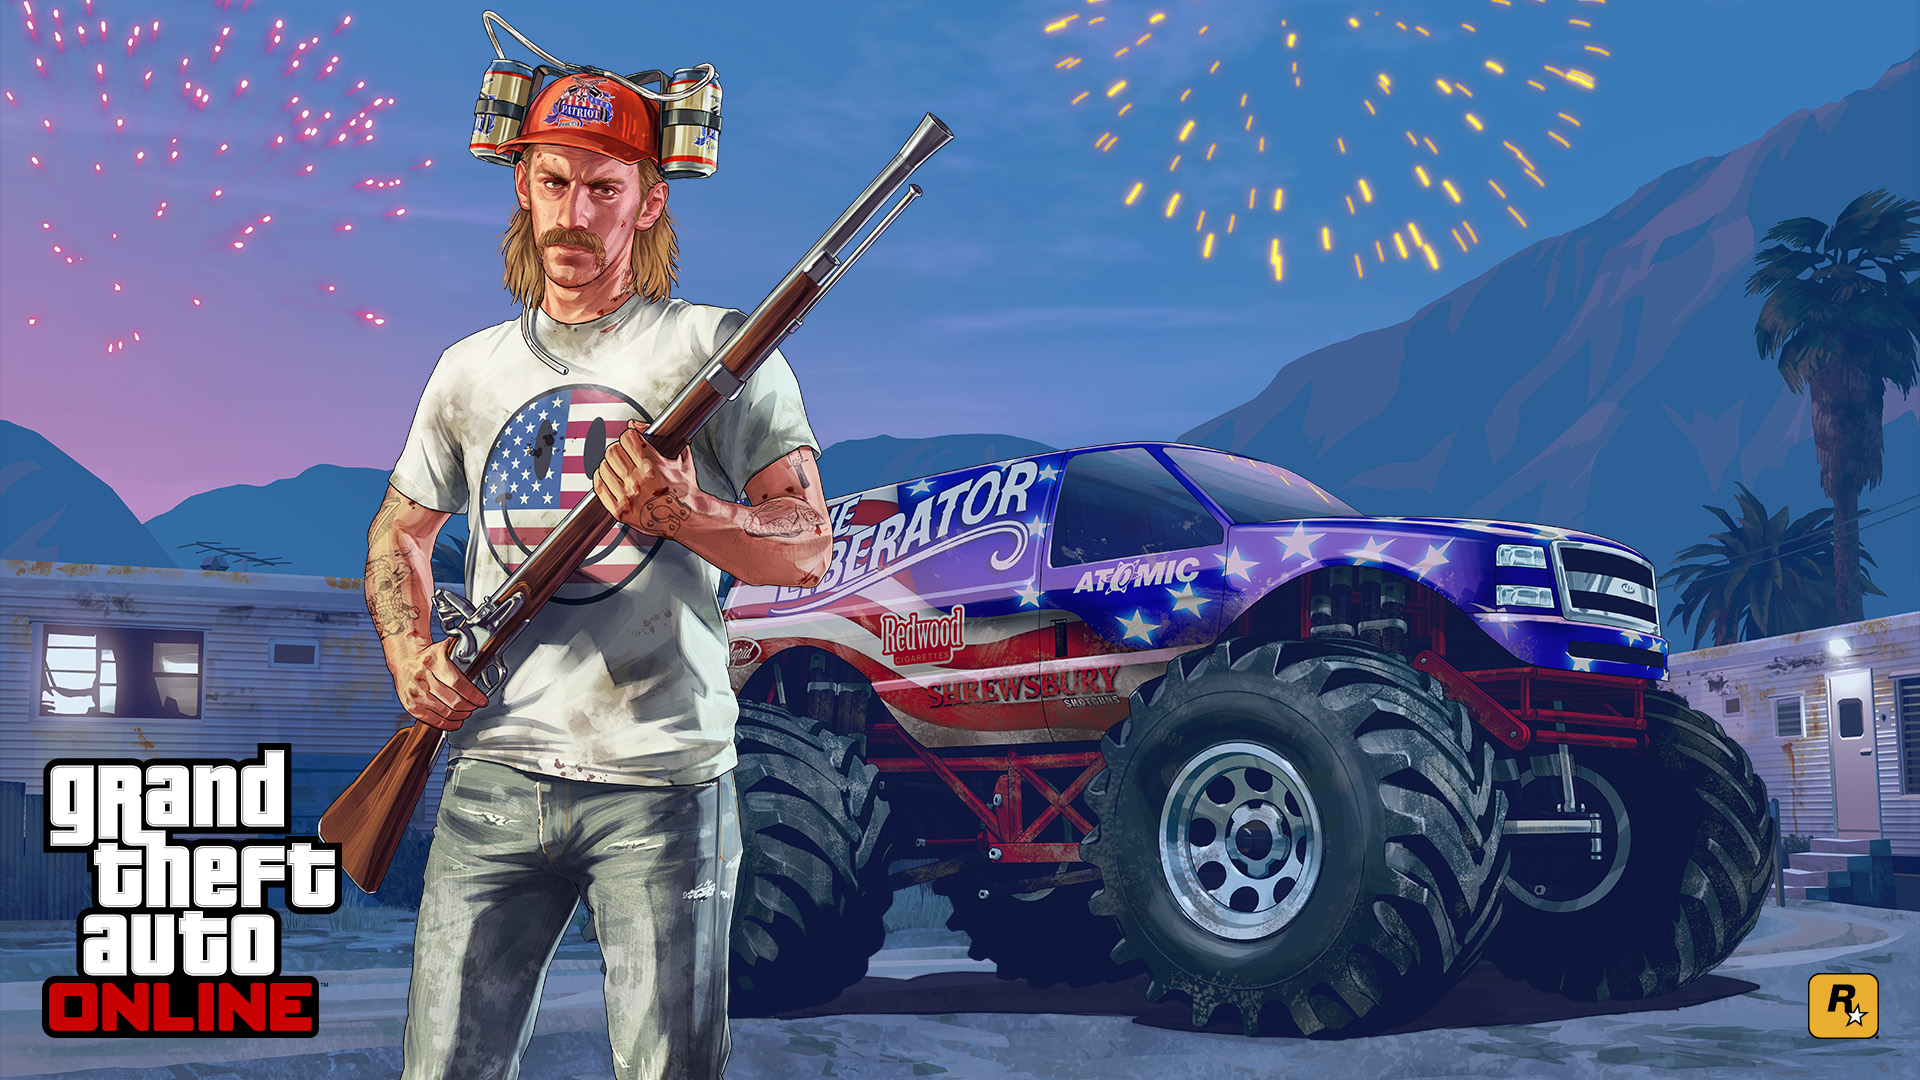 the liberator patriot - GTA5france.com